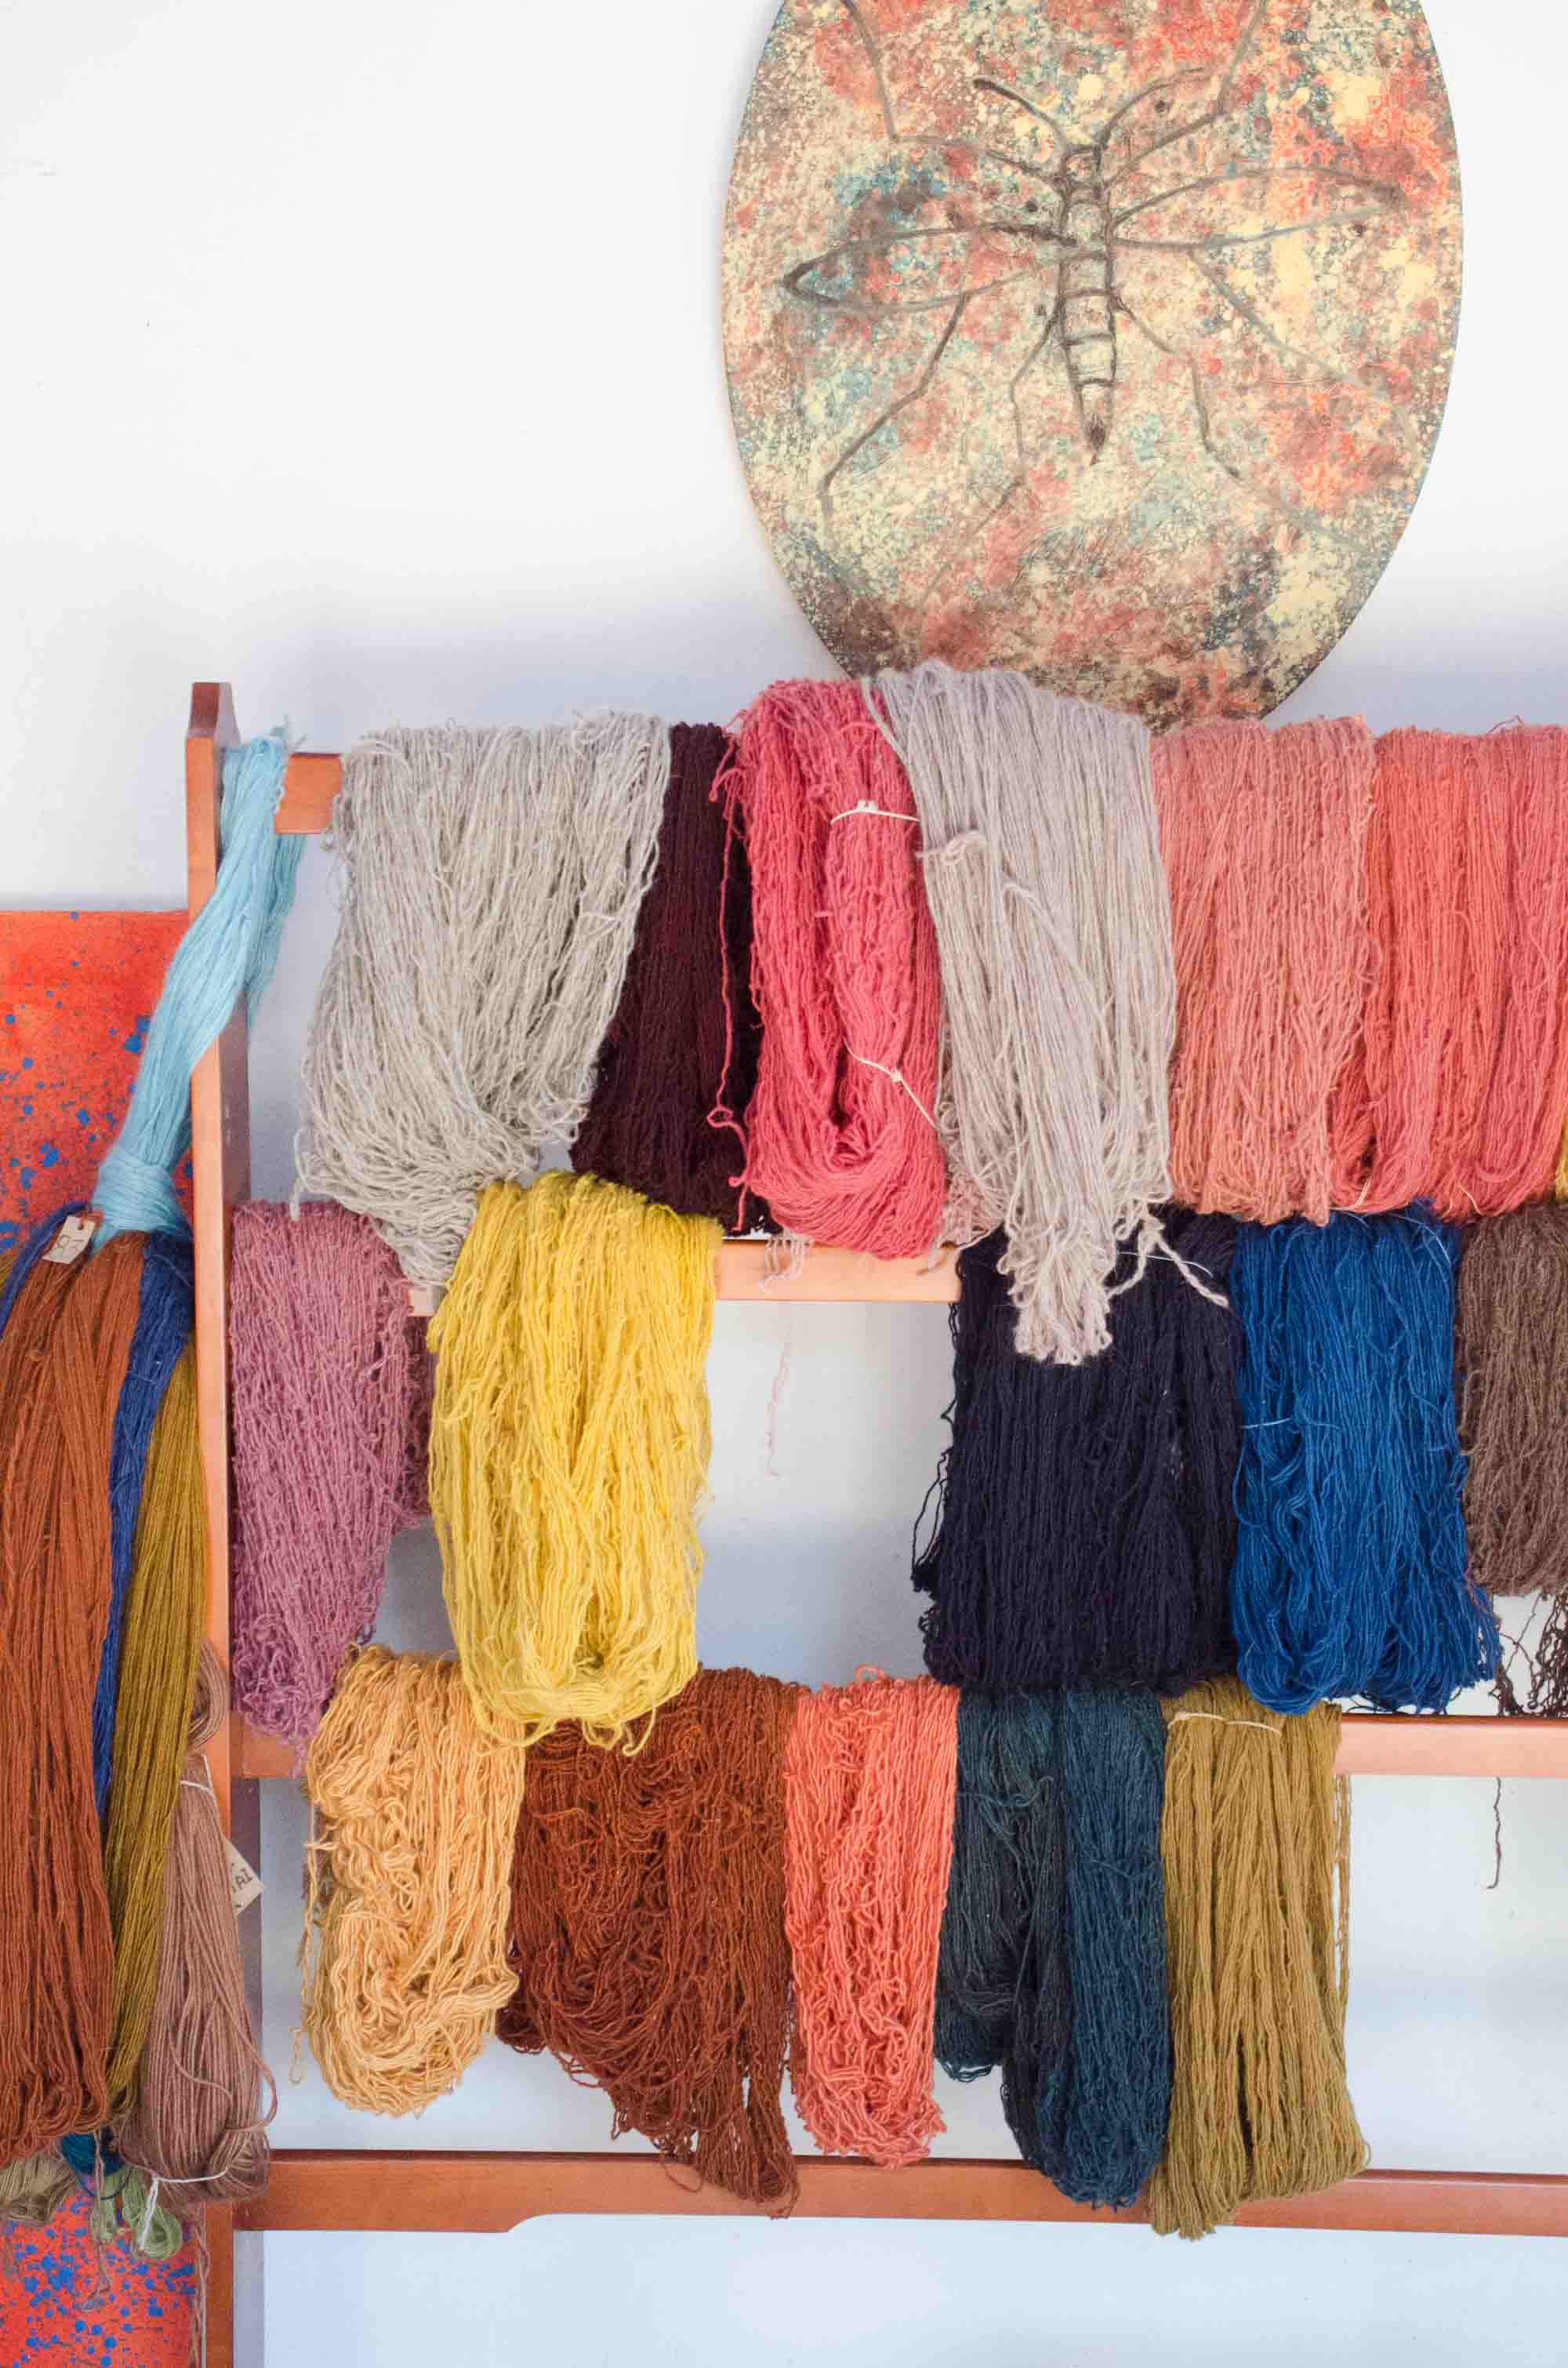 Naturally dyed yarn in Oaxaca, Mexico